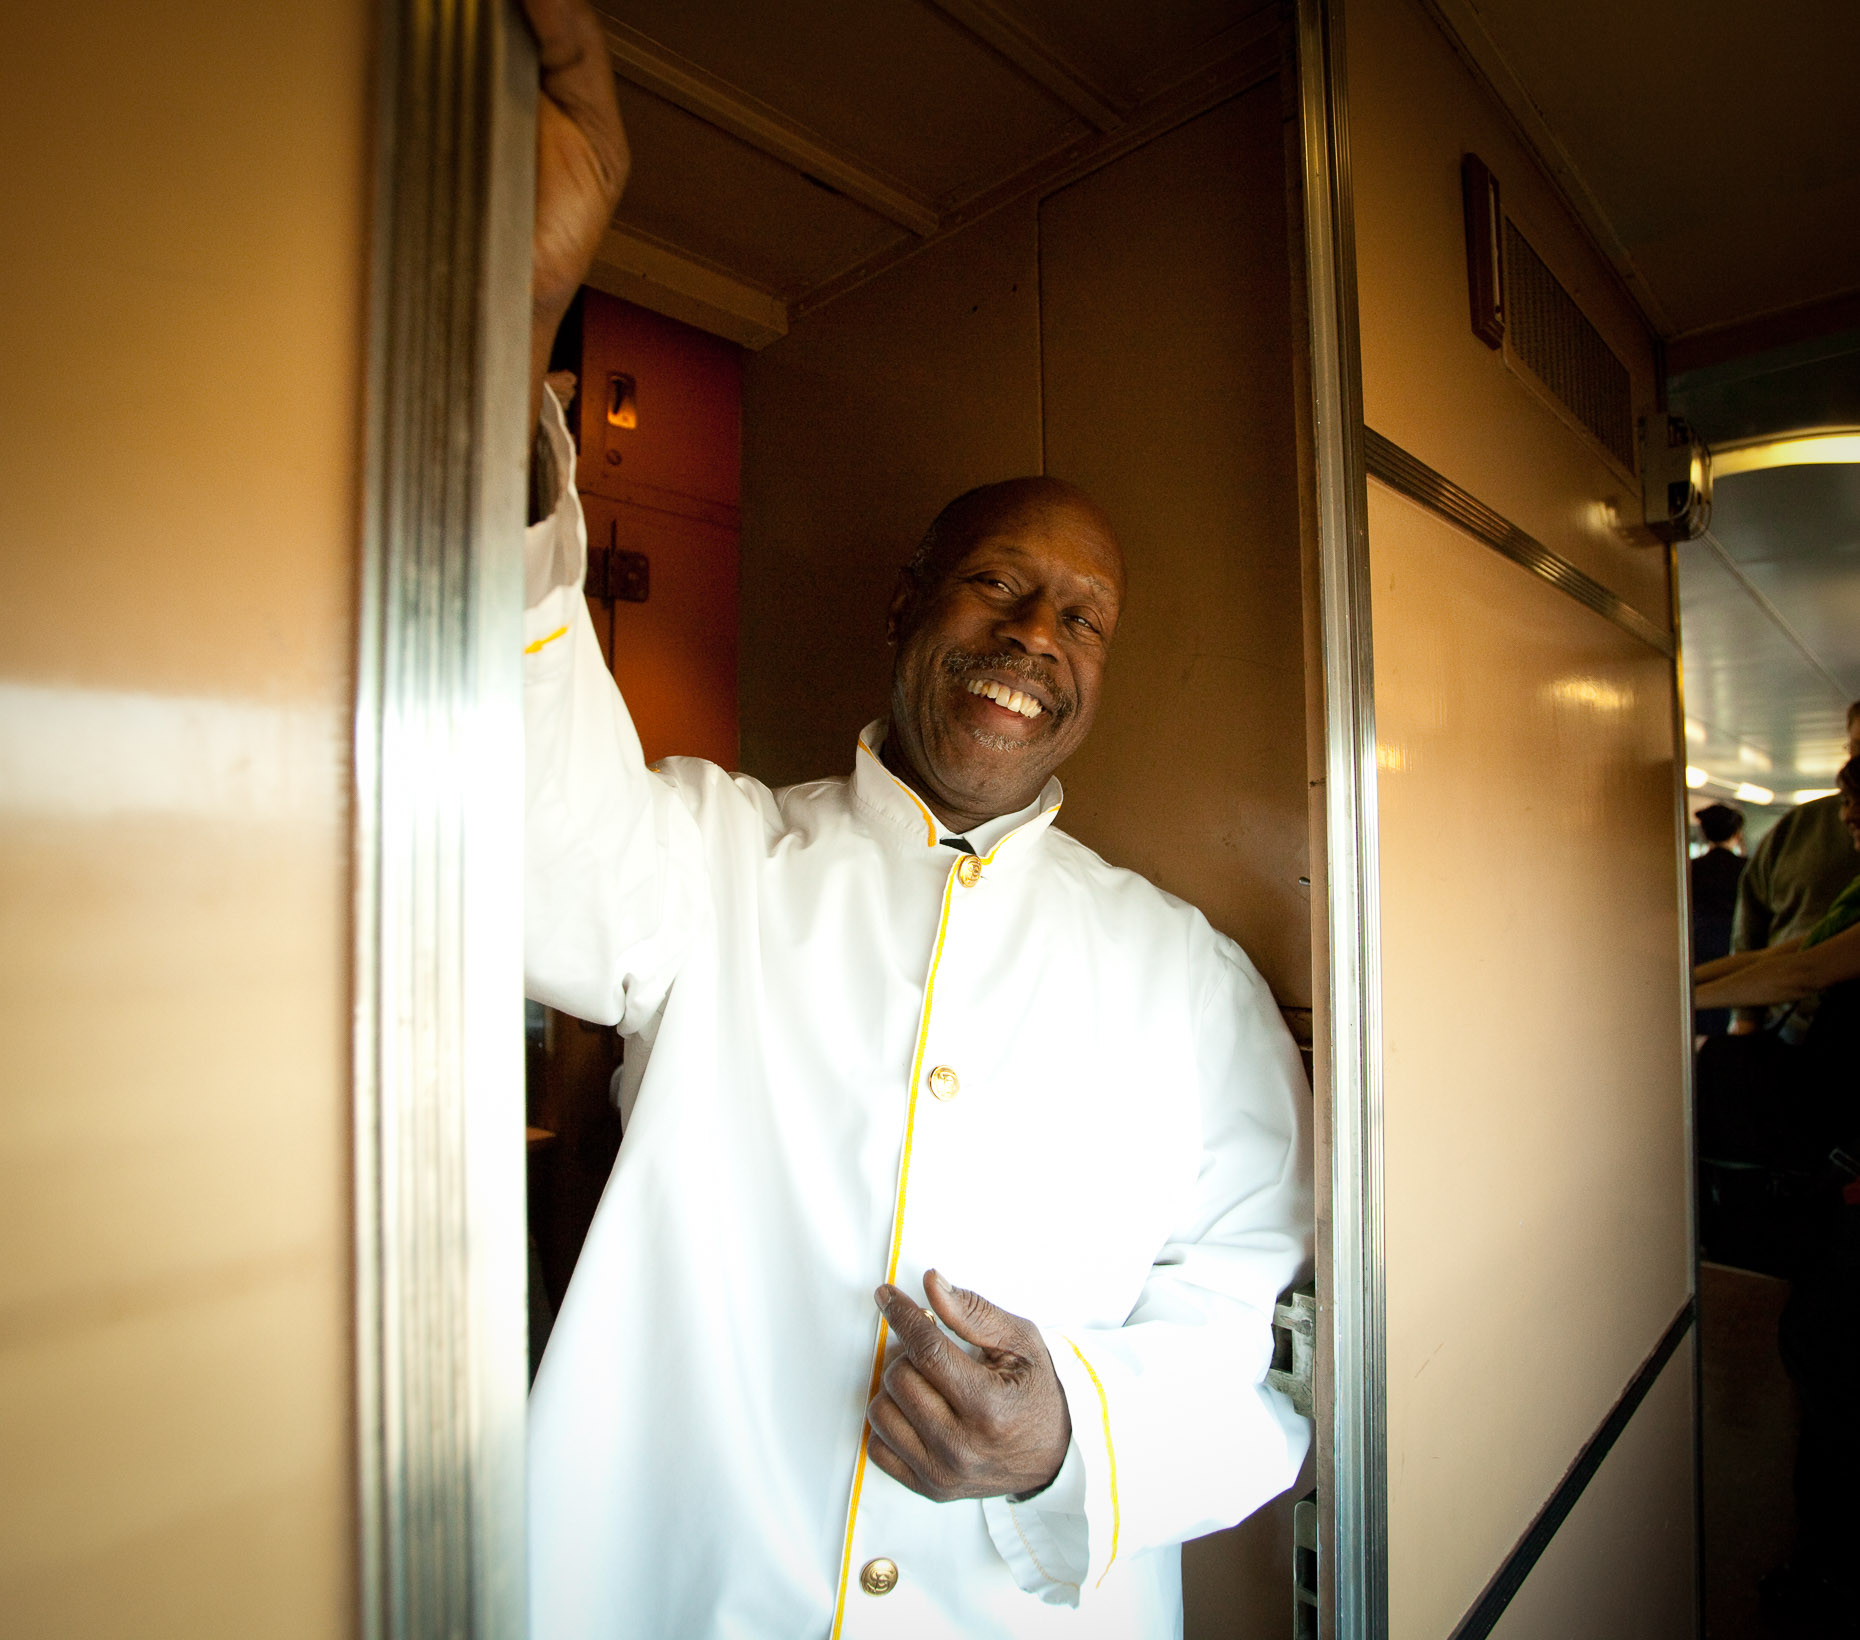 Environmental portrait of African American chef on train standing in kitchen doorway